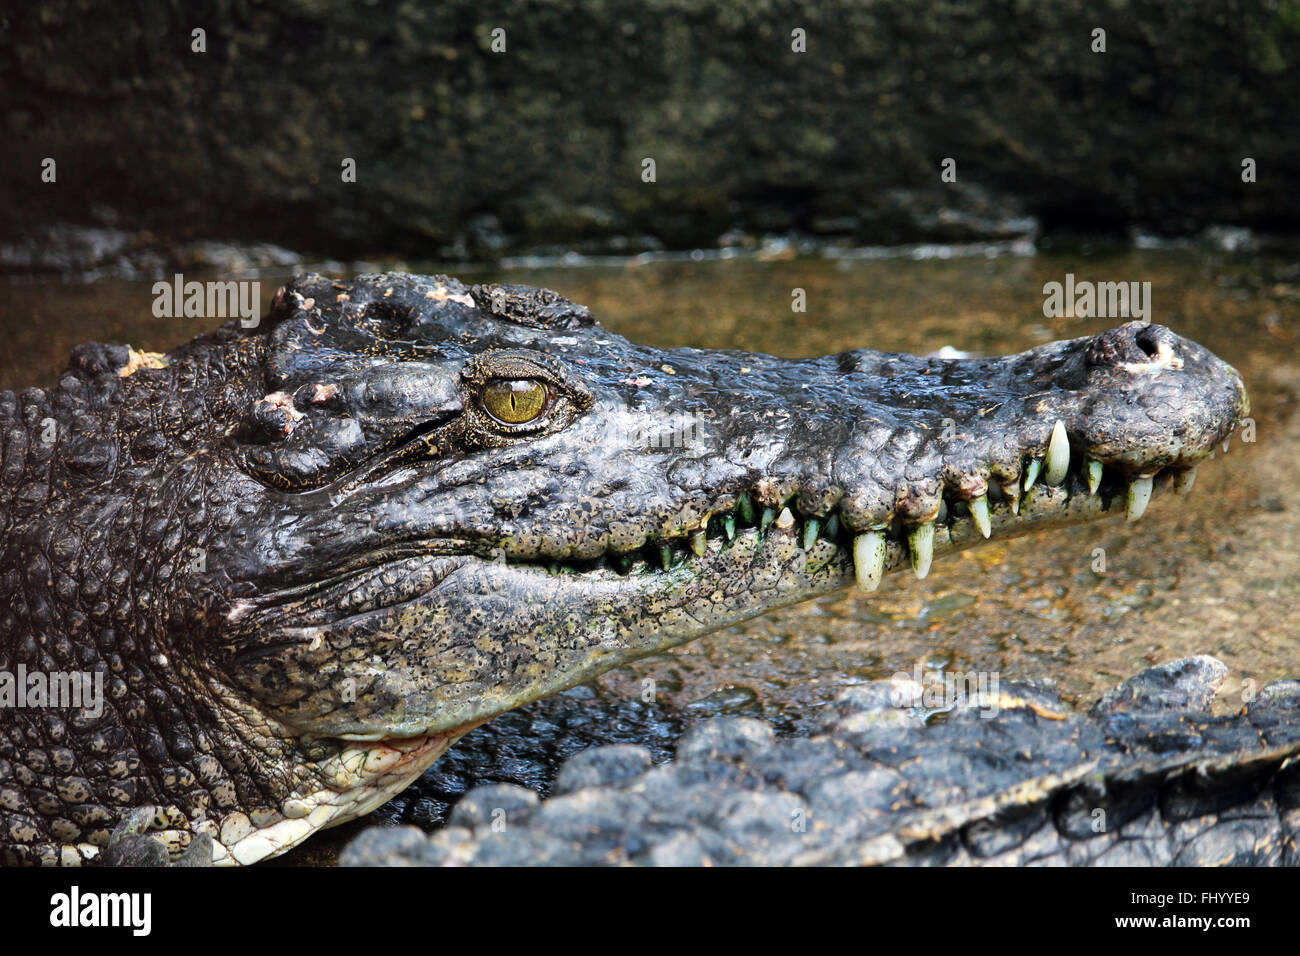 MIRI/MALAYSIA - 24 NOVEMBER 2015: A small crocodile with big teeth in Borneo - Stock Image